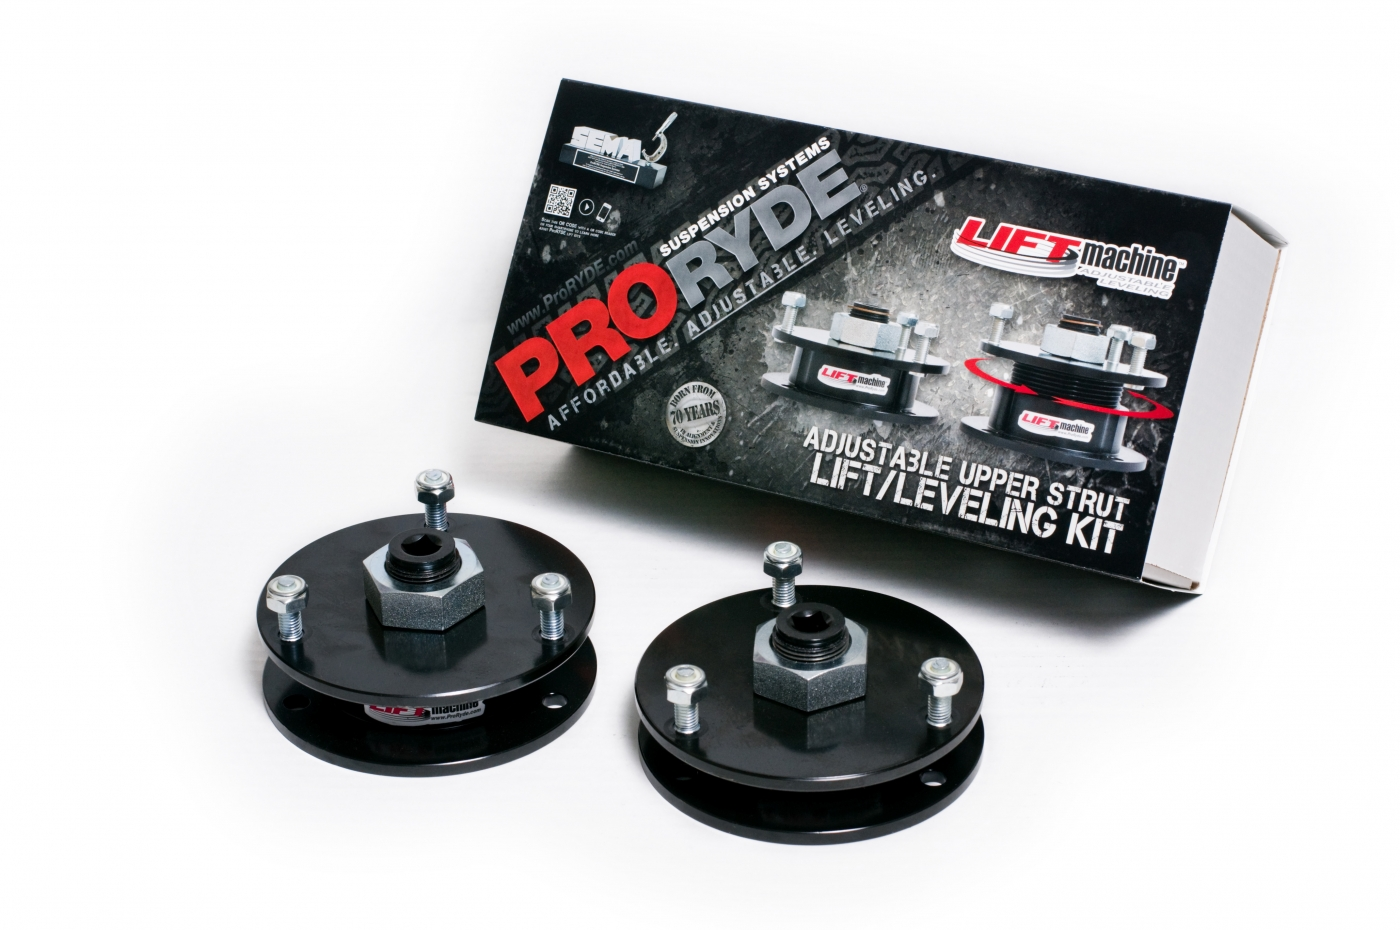 Progressive Dodge >> CHEVROLET GMC LD 1500 TRUCK & SUV ADJUSTABLE FRONT LIFT LEVELING KIT -GMT900-